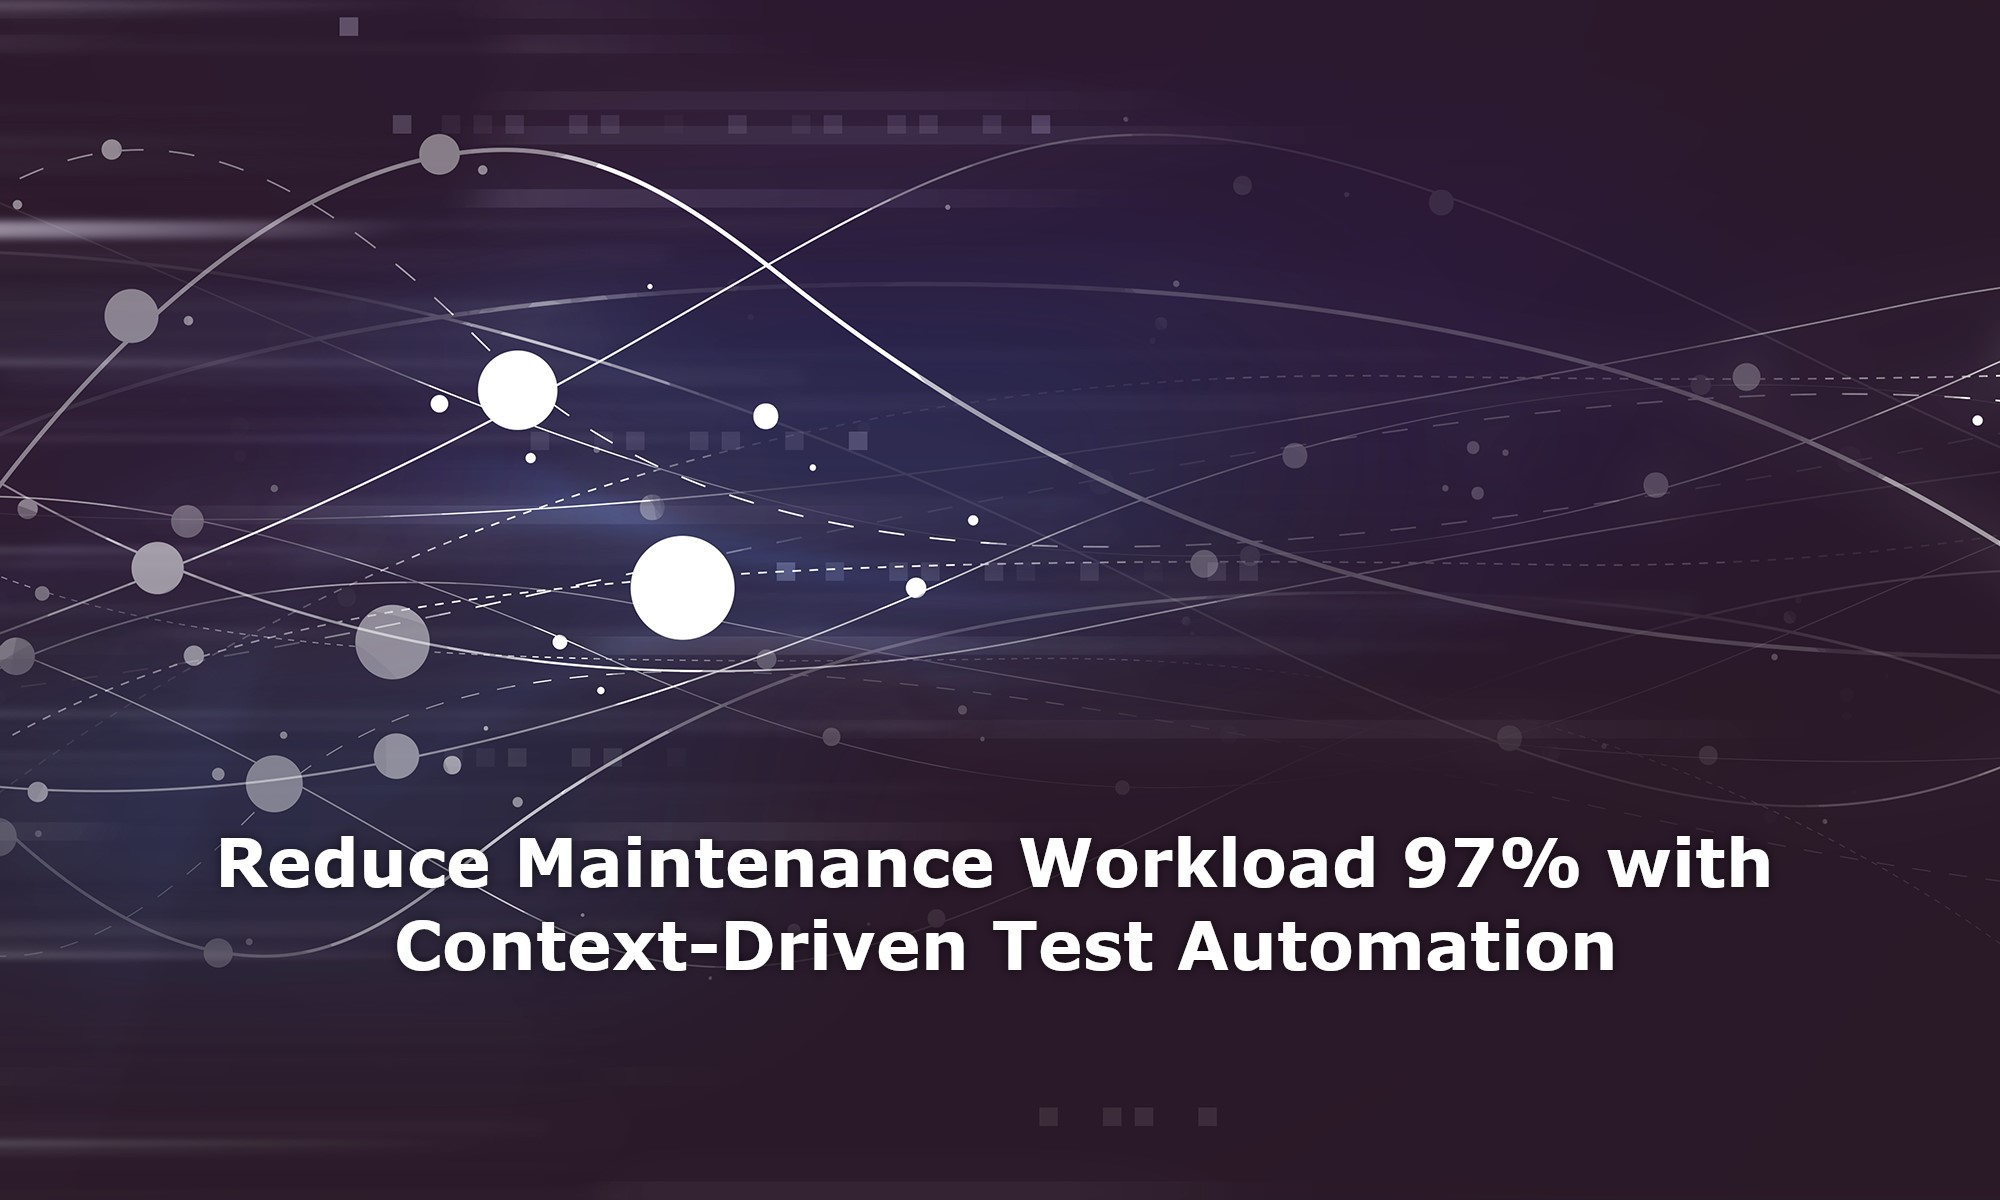 Reduce Maintenance Workload 97% with Context-Driven Test Automation